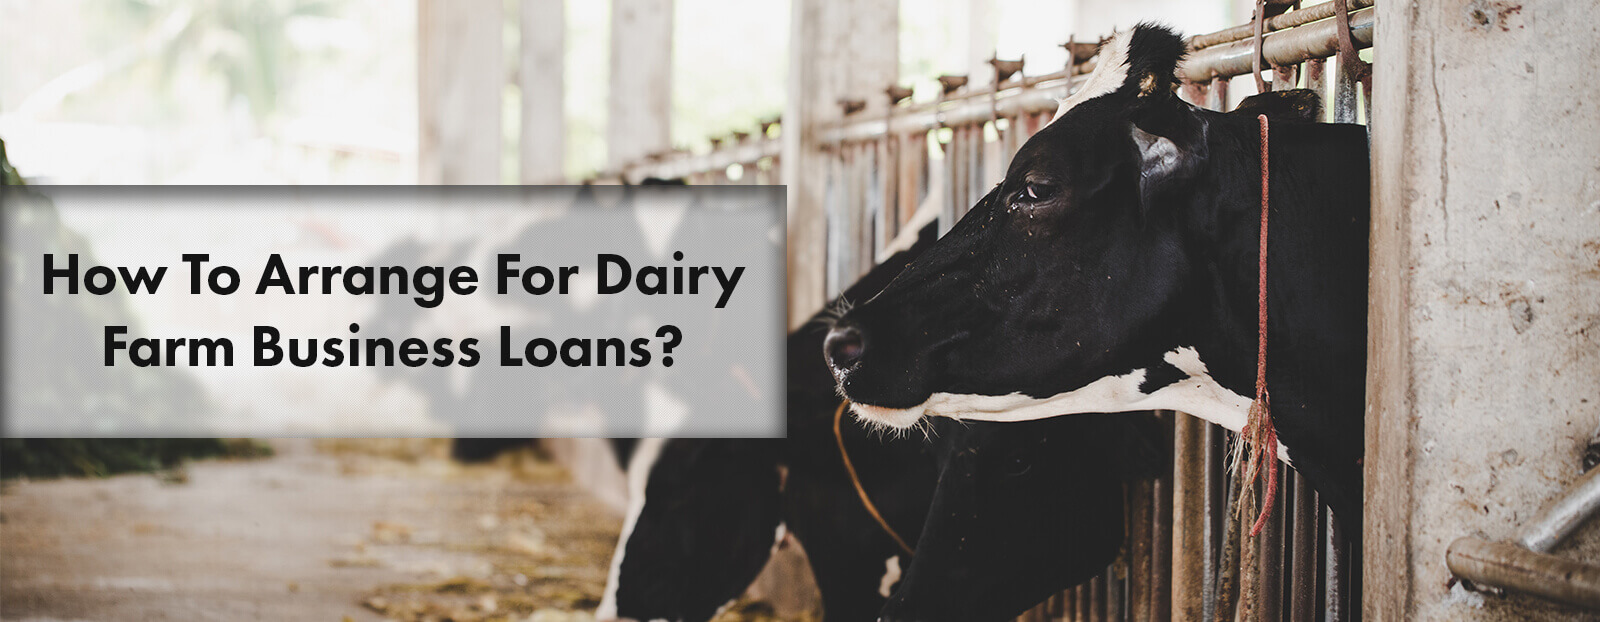 How To Arrange For Dairy Farm Business Loans?